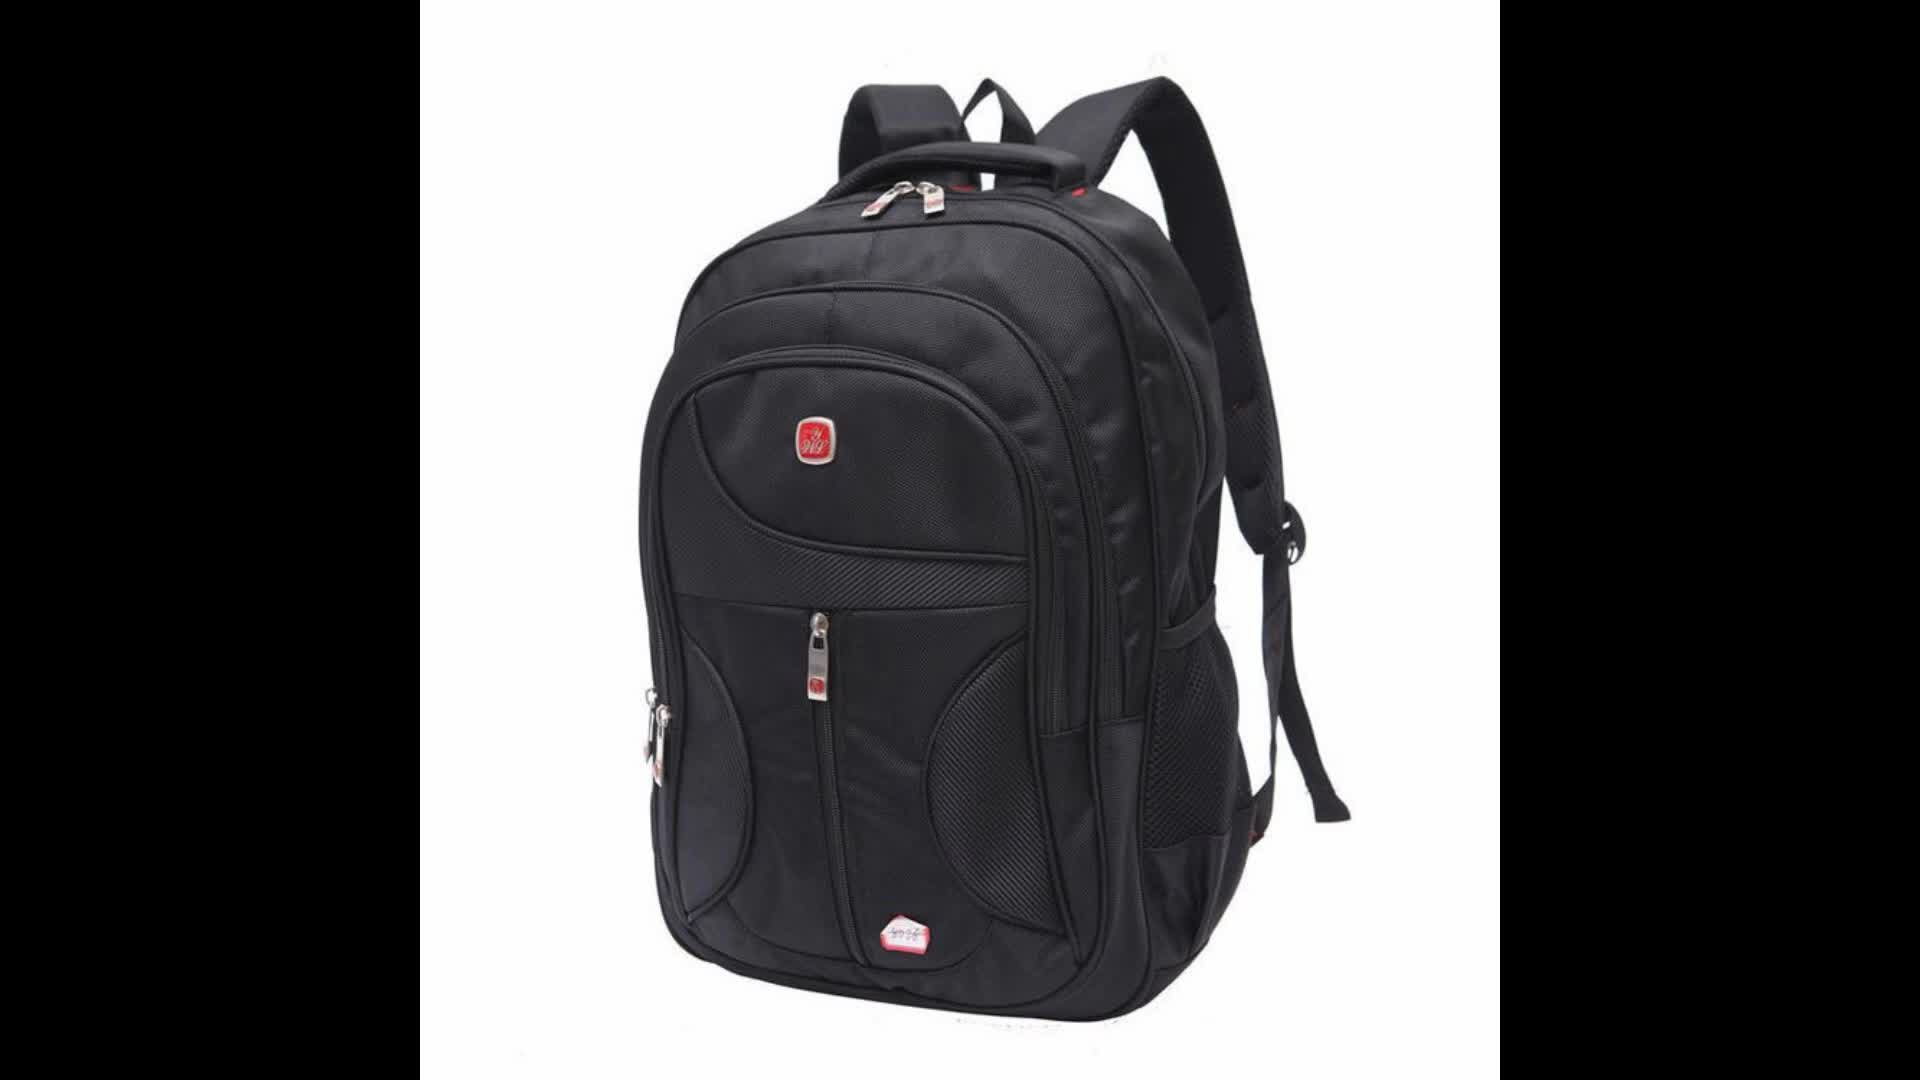 fashion backpack new arrival 30-40 L waterproof business nylon student backpack